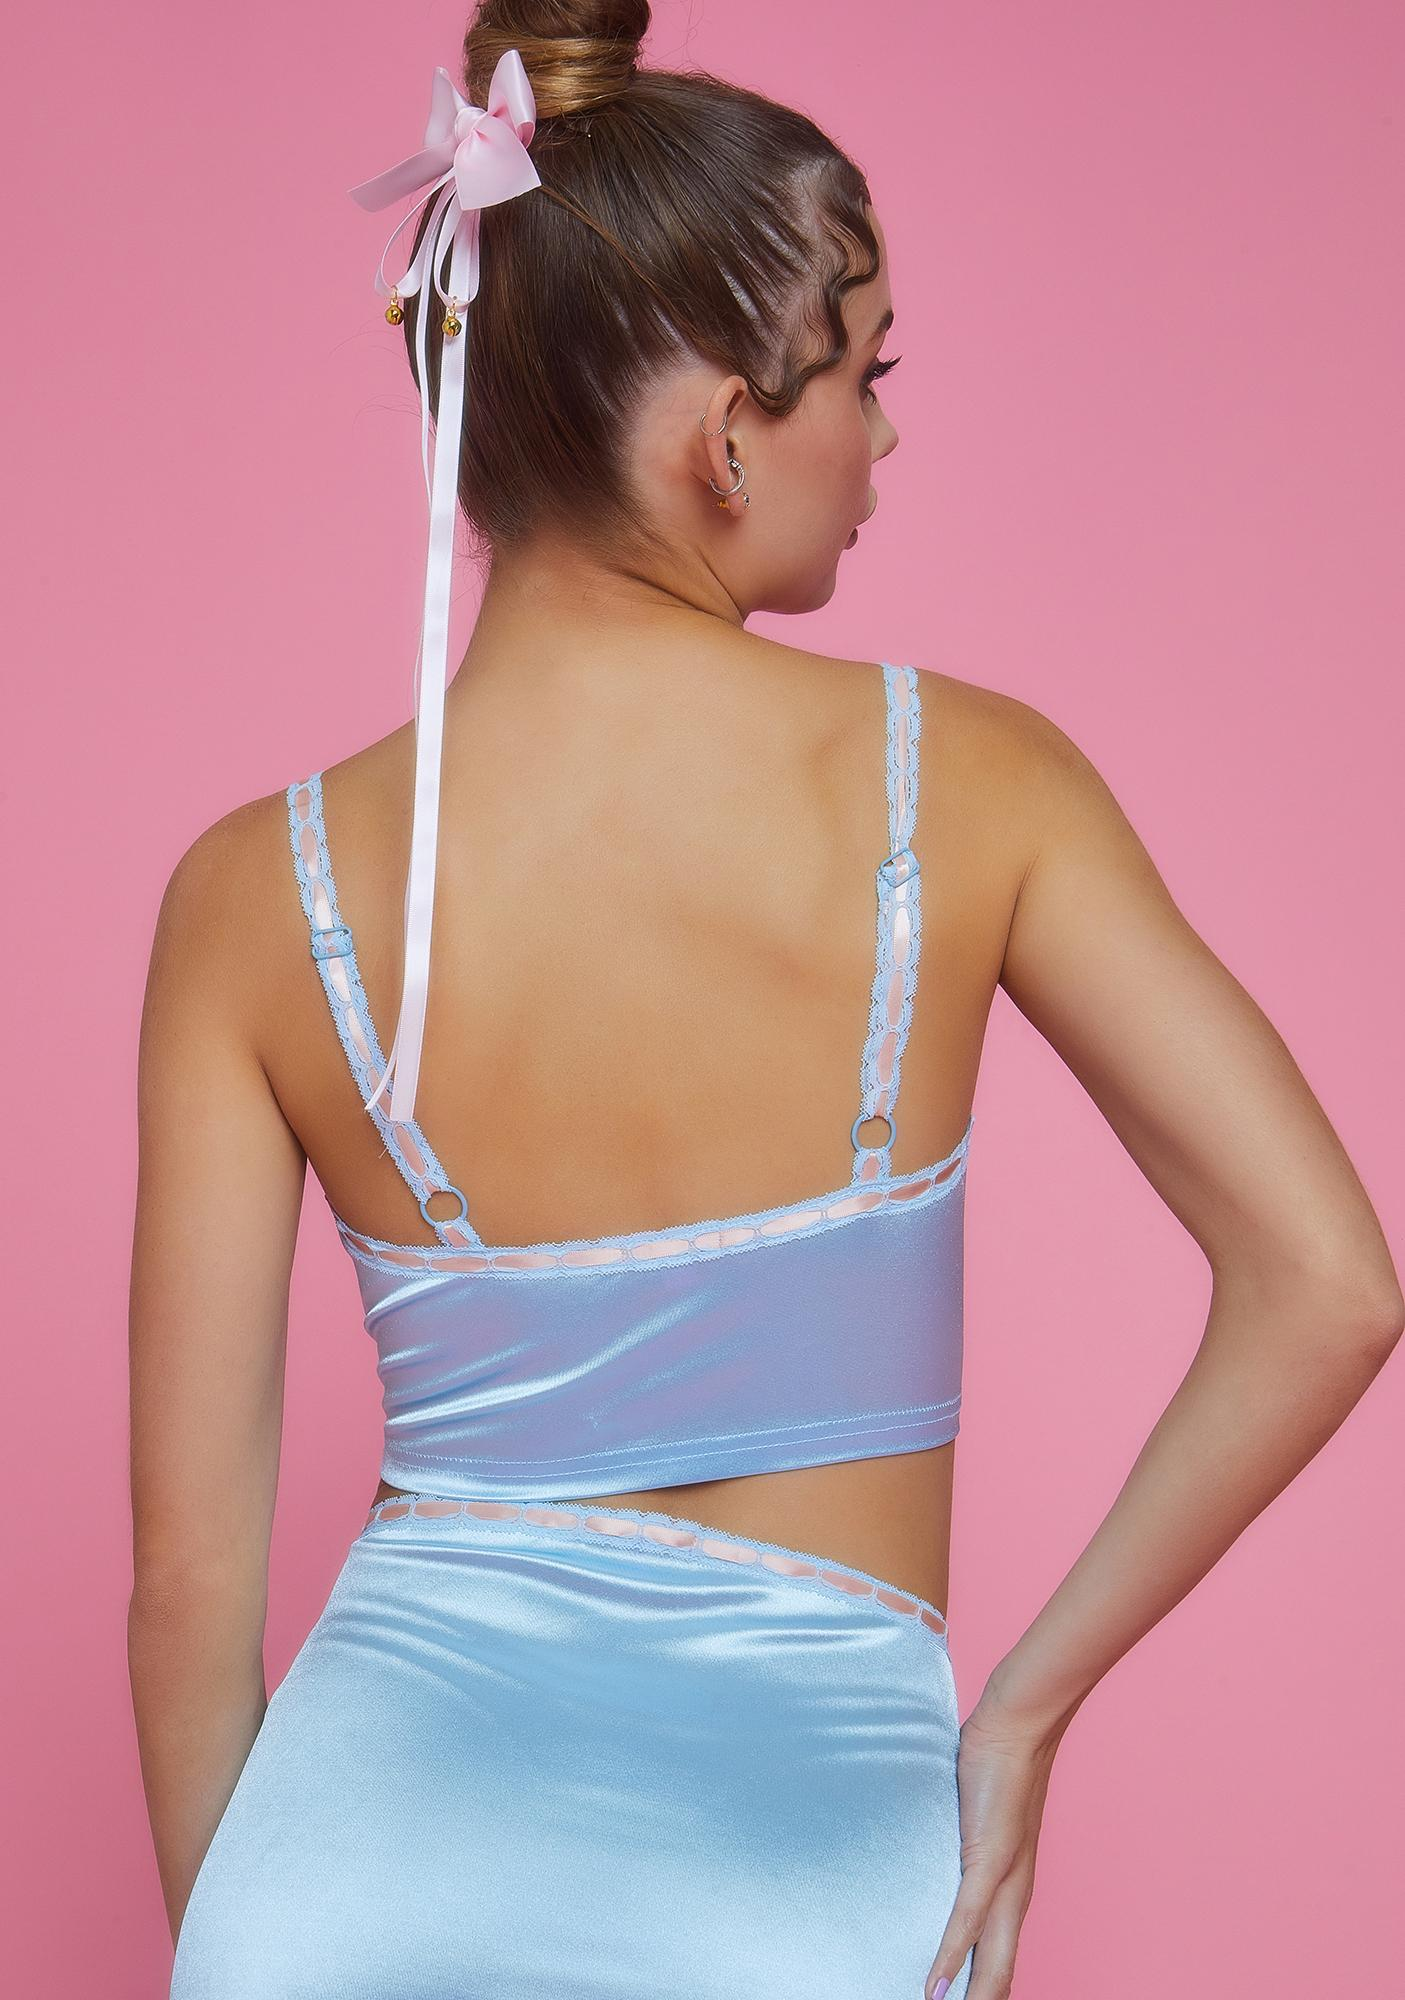 Sugar Thrillz Sweet Silhouette Satin Cami Top